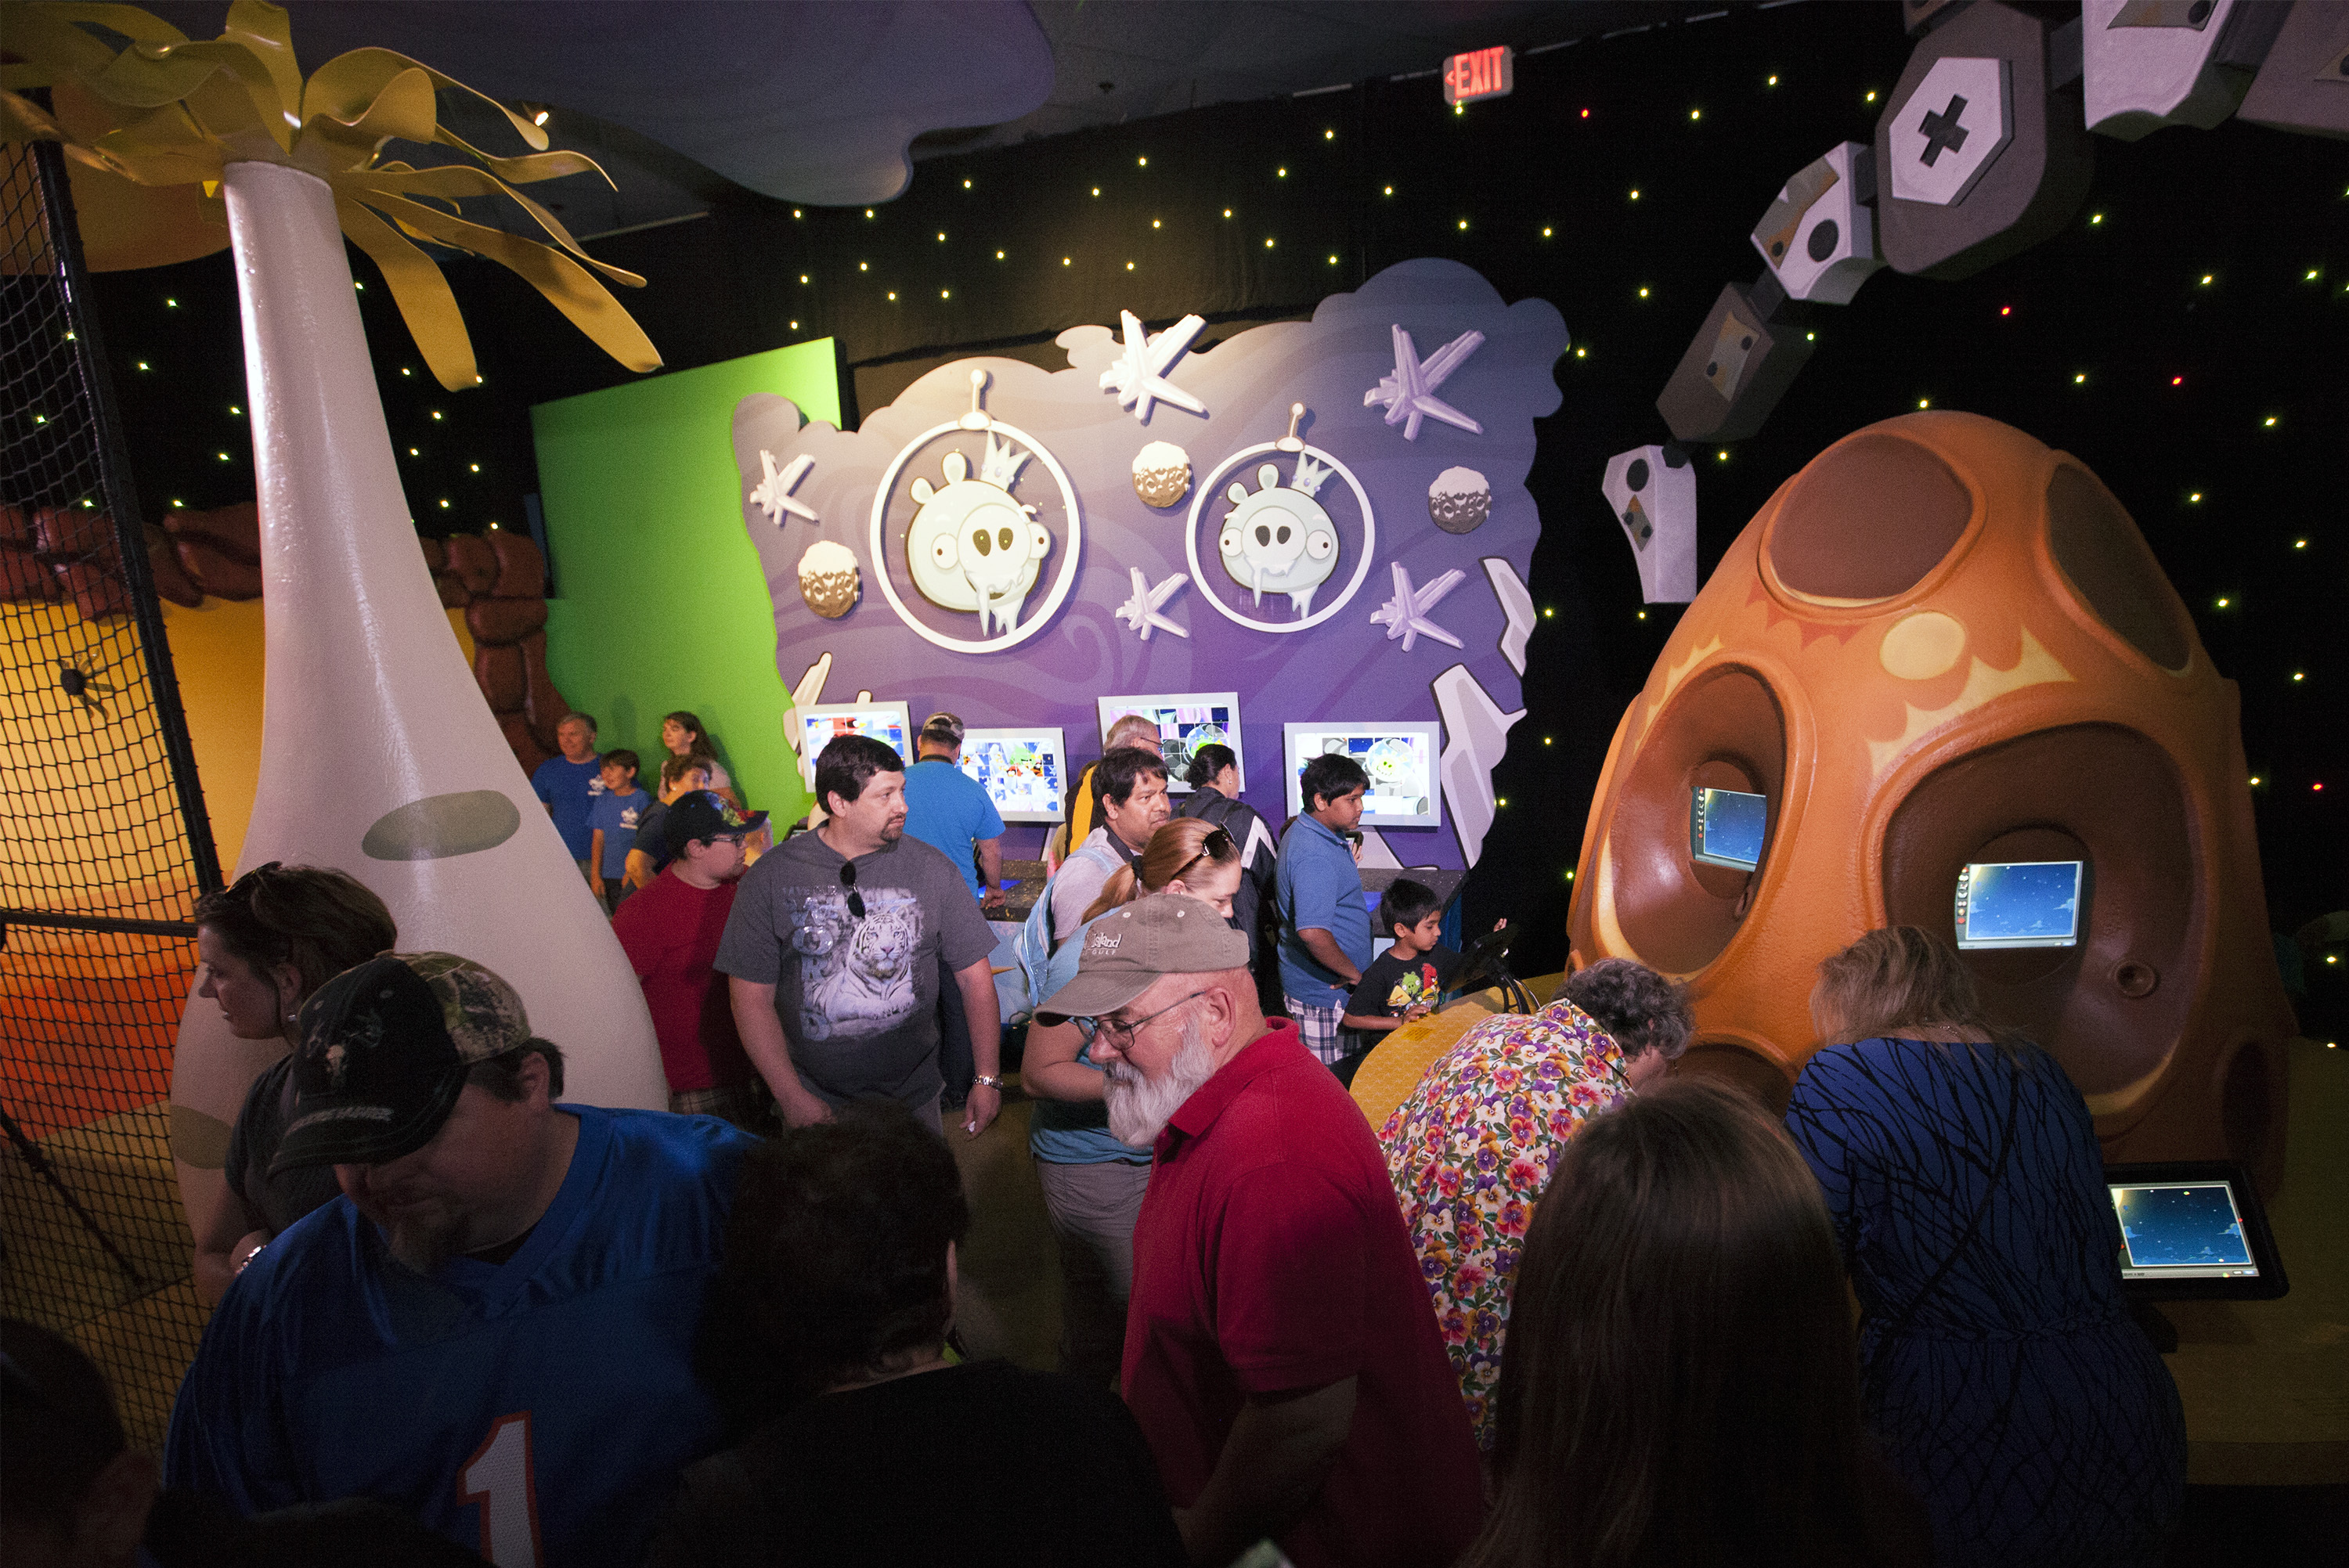 Visitors Try Out Angry Birds Space Encounter Exhibit